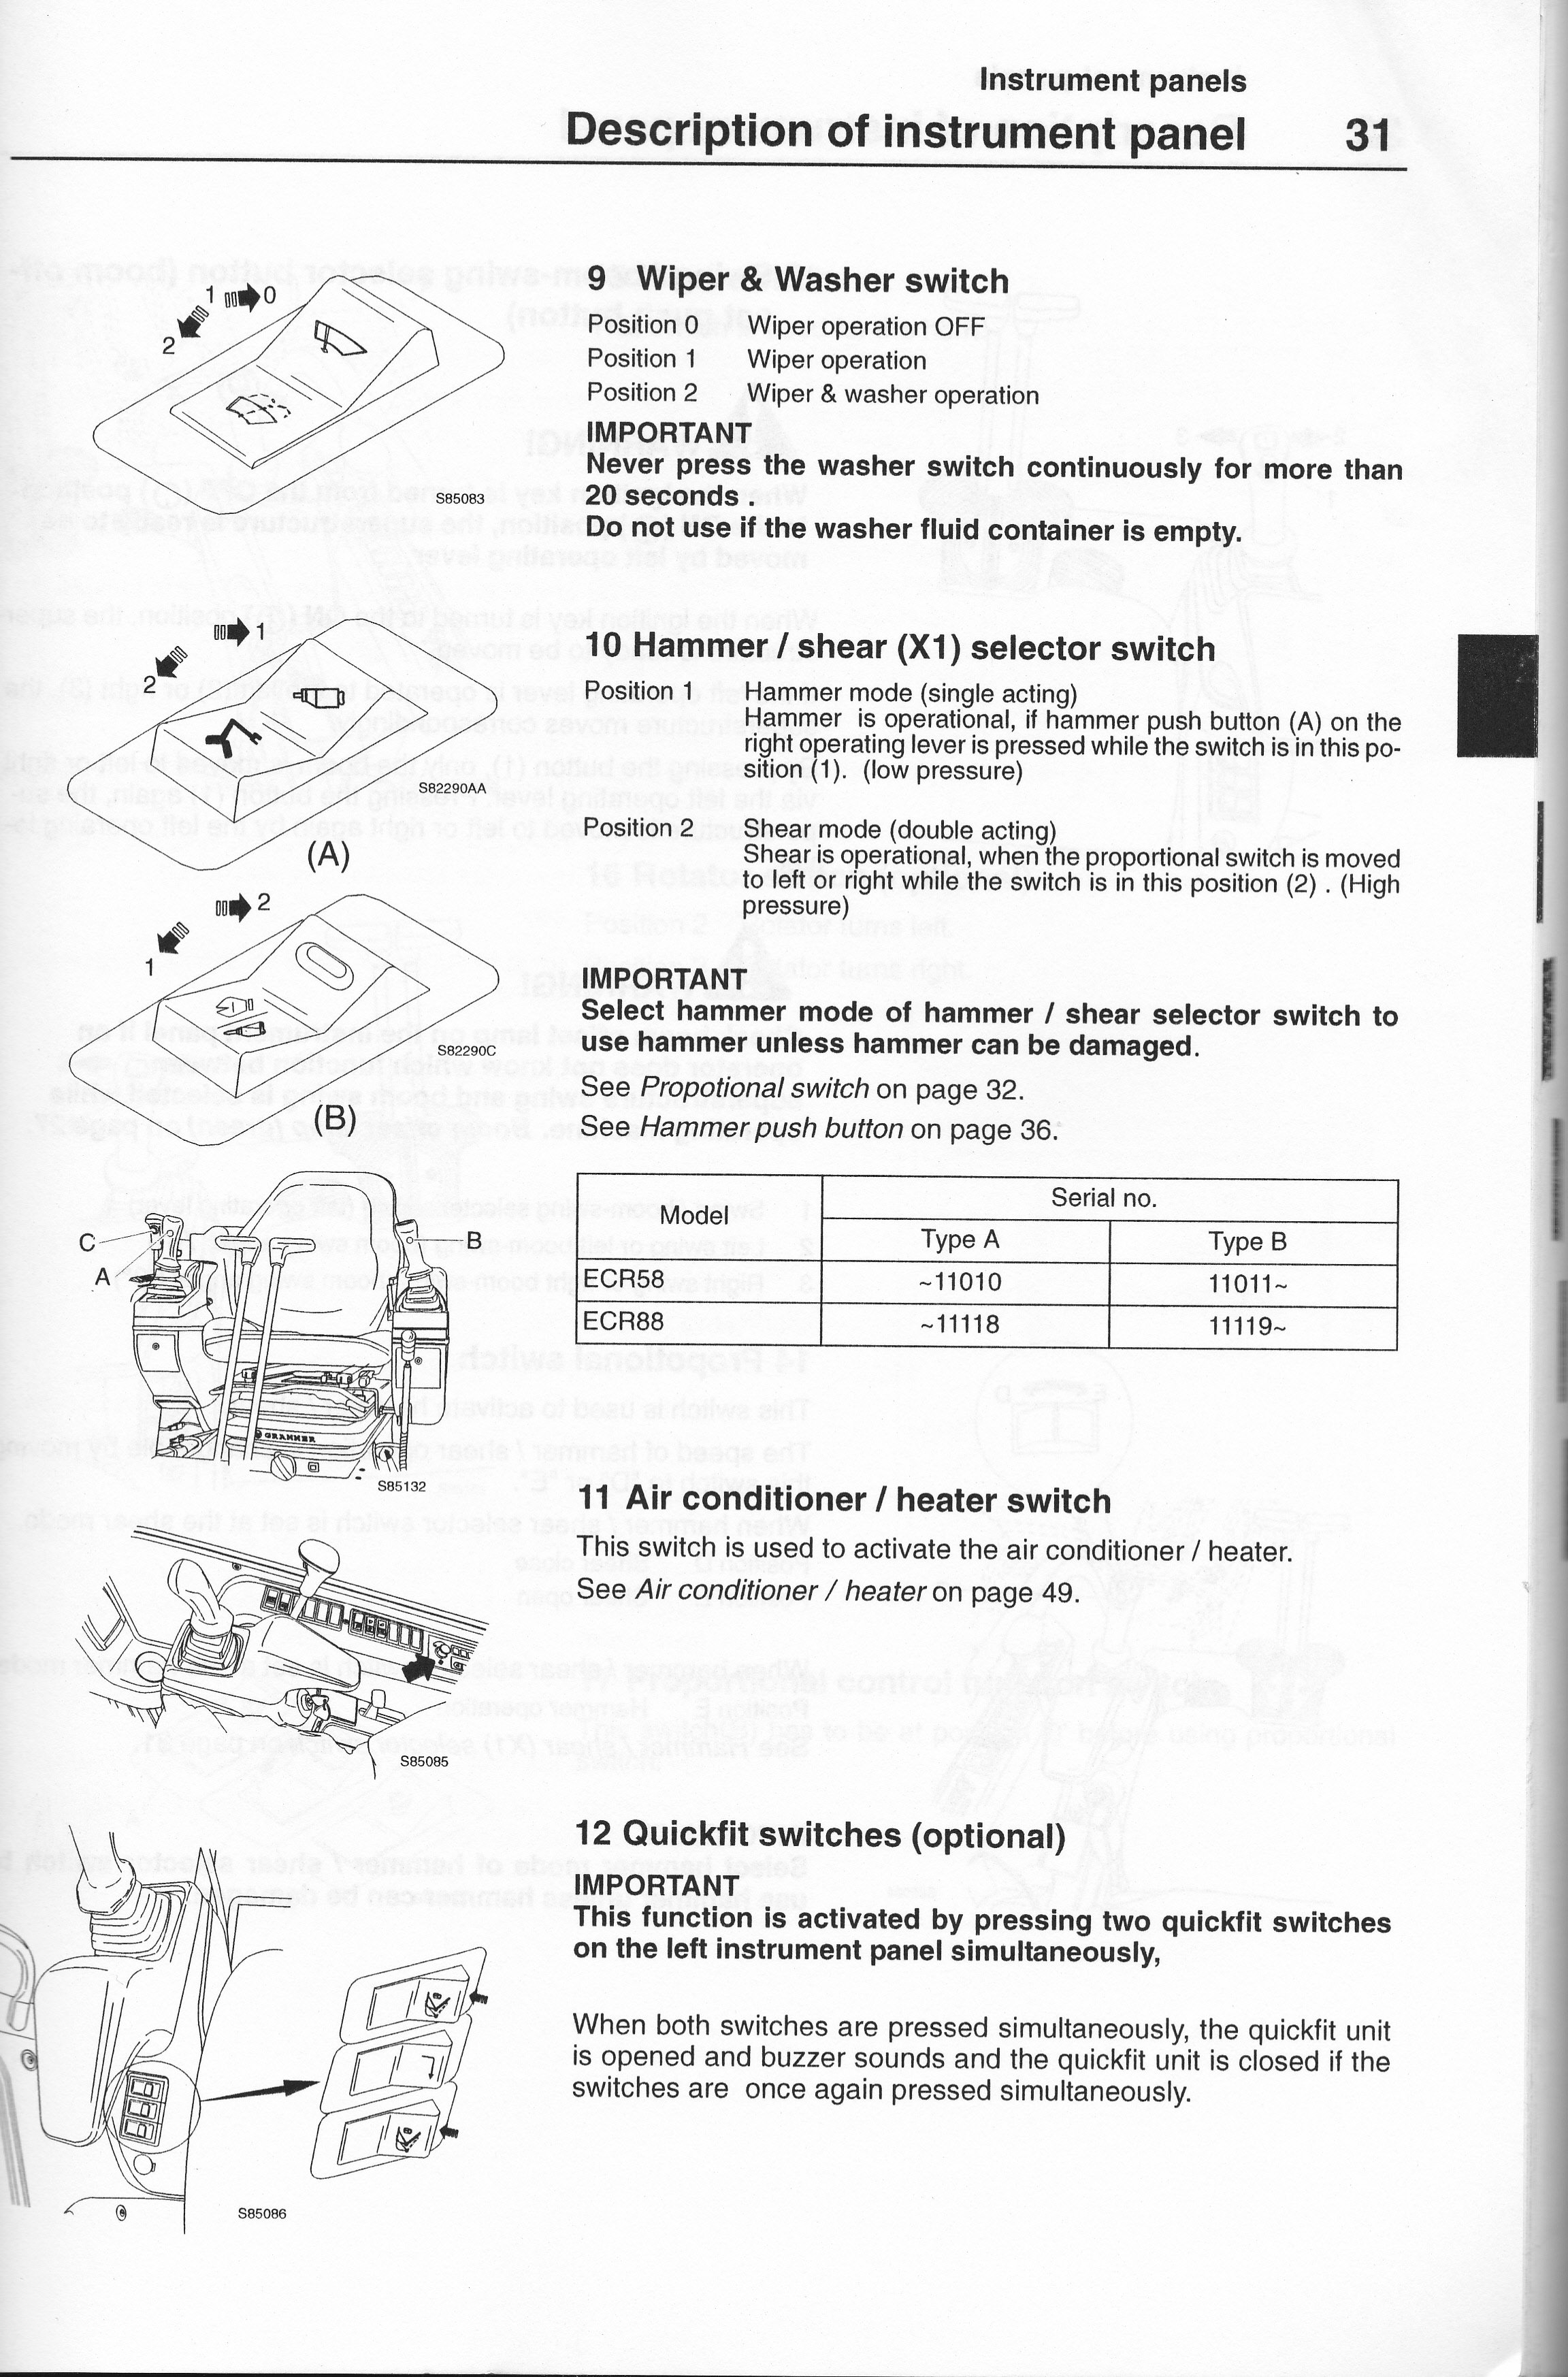 i have a volvo ecr58 and the key switch is bad it is hard to start rh justanswer com User Manual User Manual